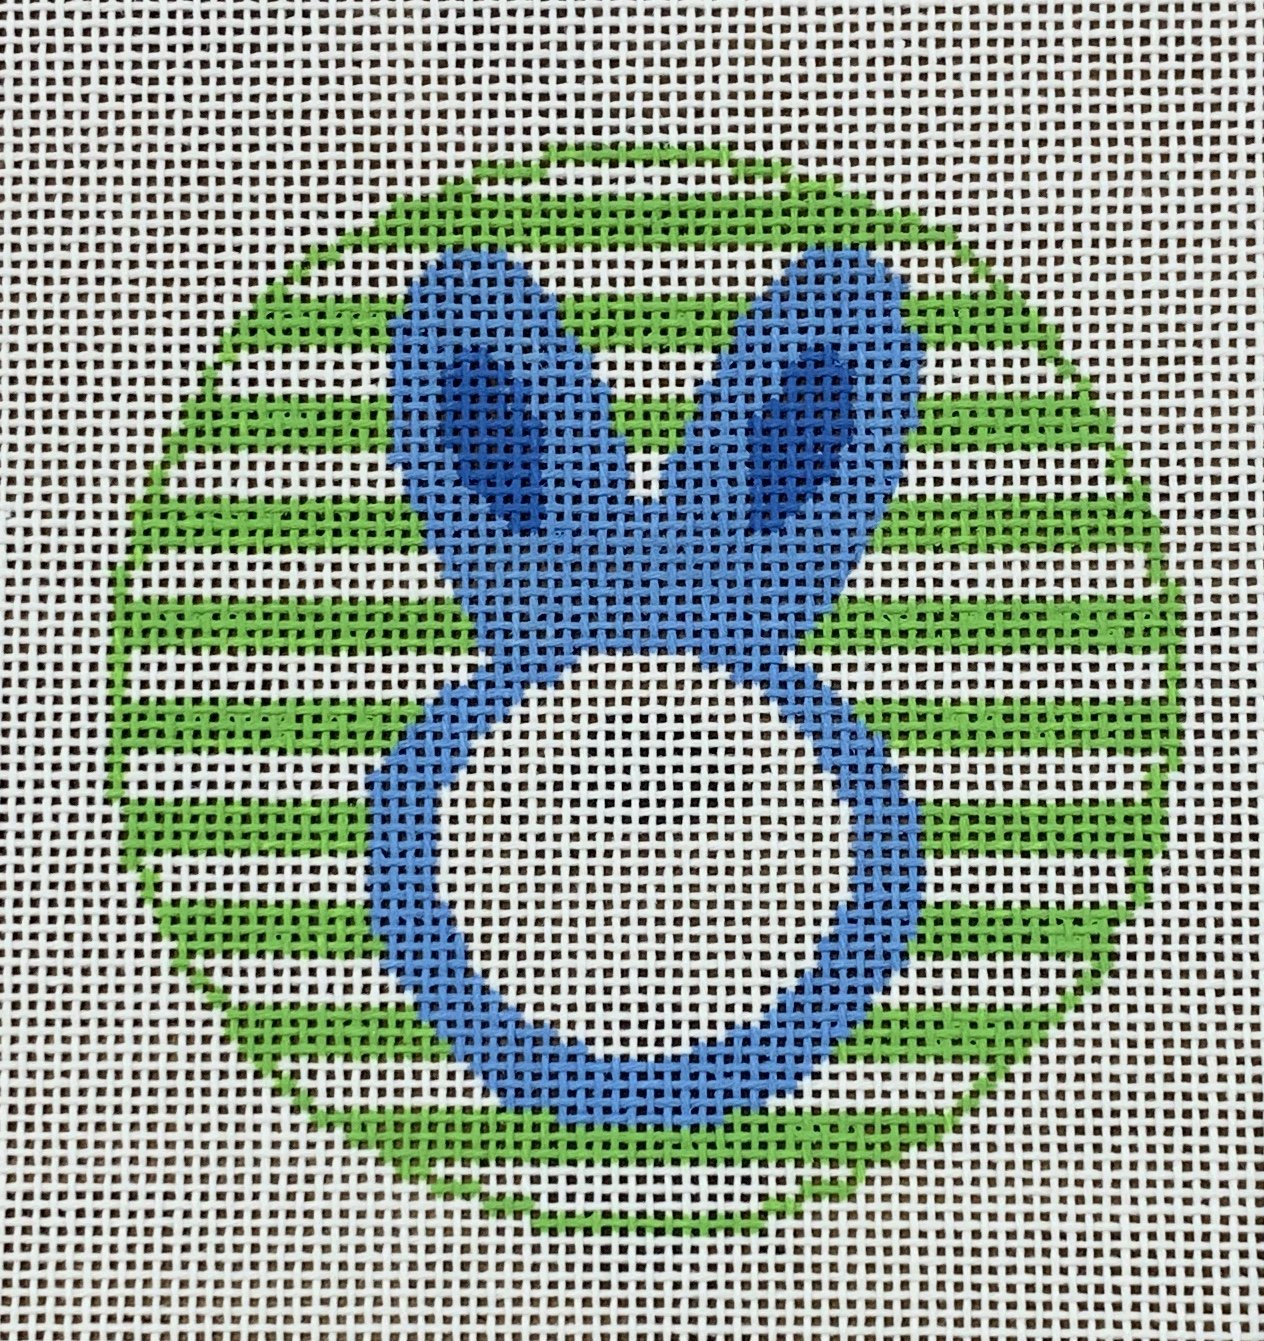 Bunny Round - blank space for monogram